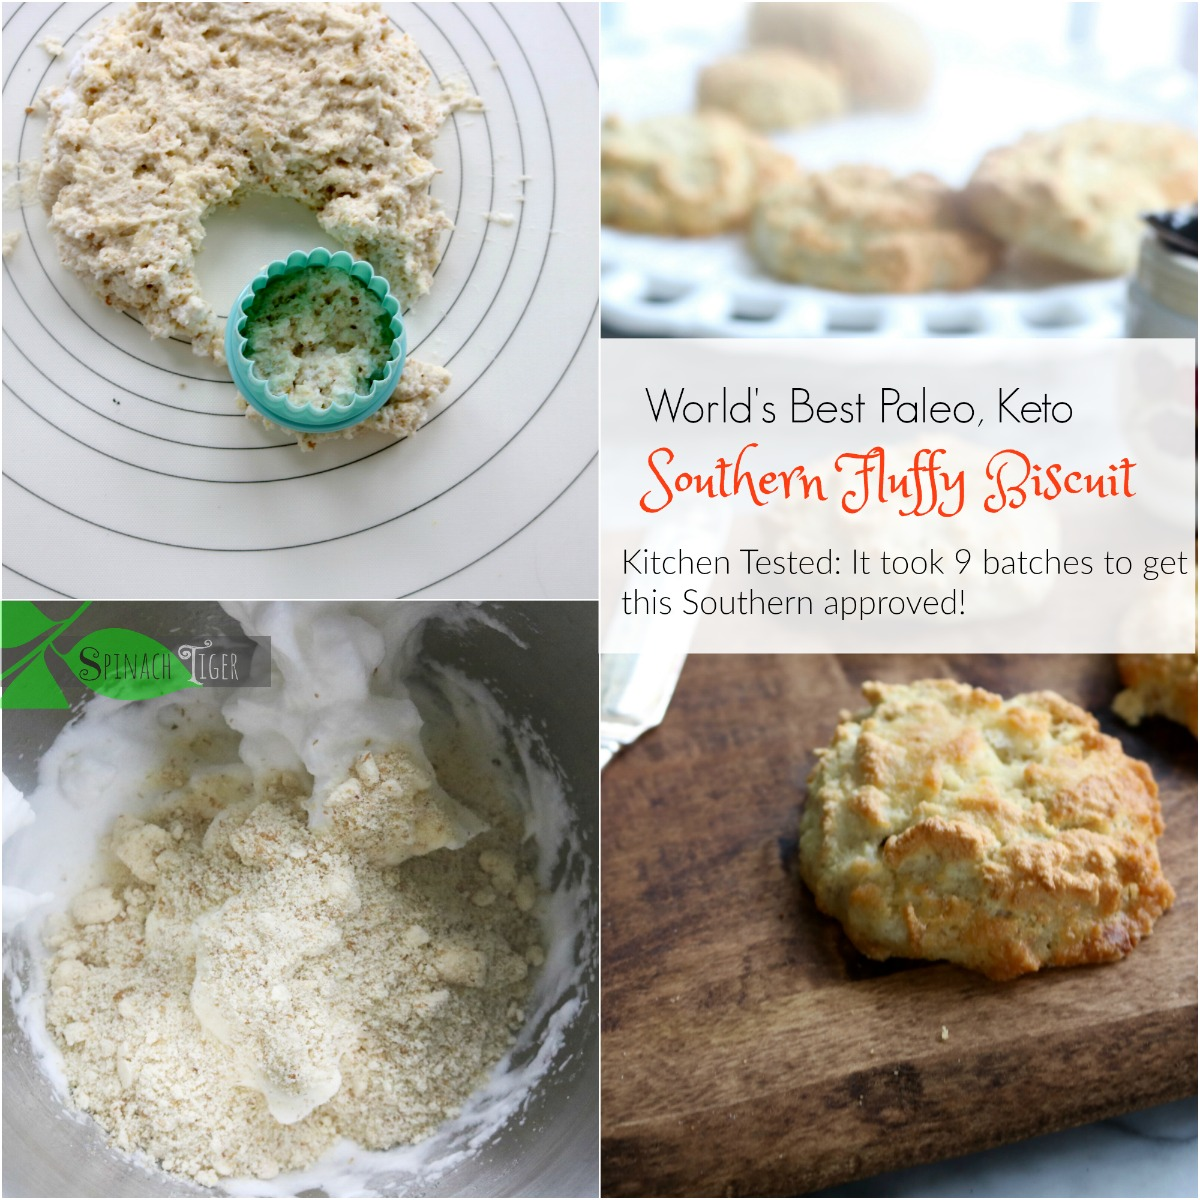 How to Make Almond Flour, Southern, Grain Free Biscuits from Spinach Tiger